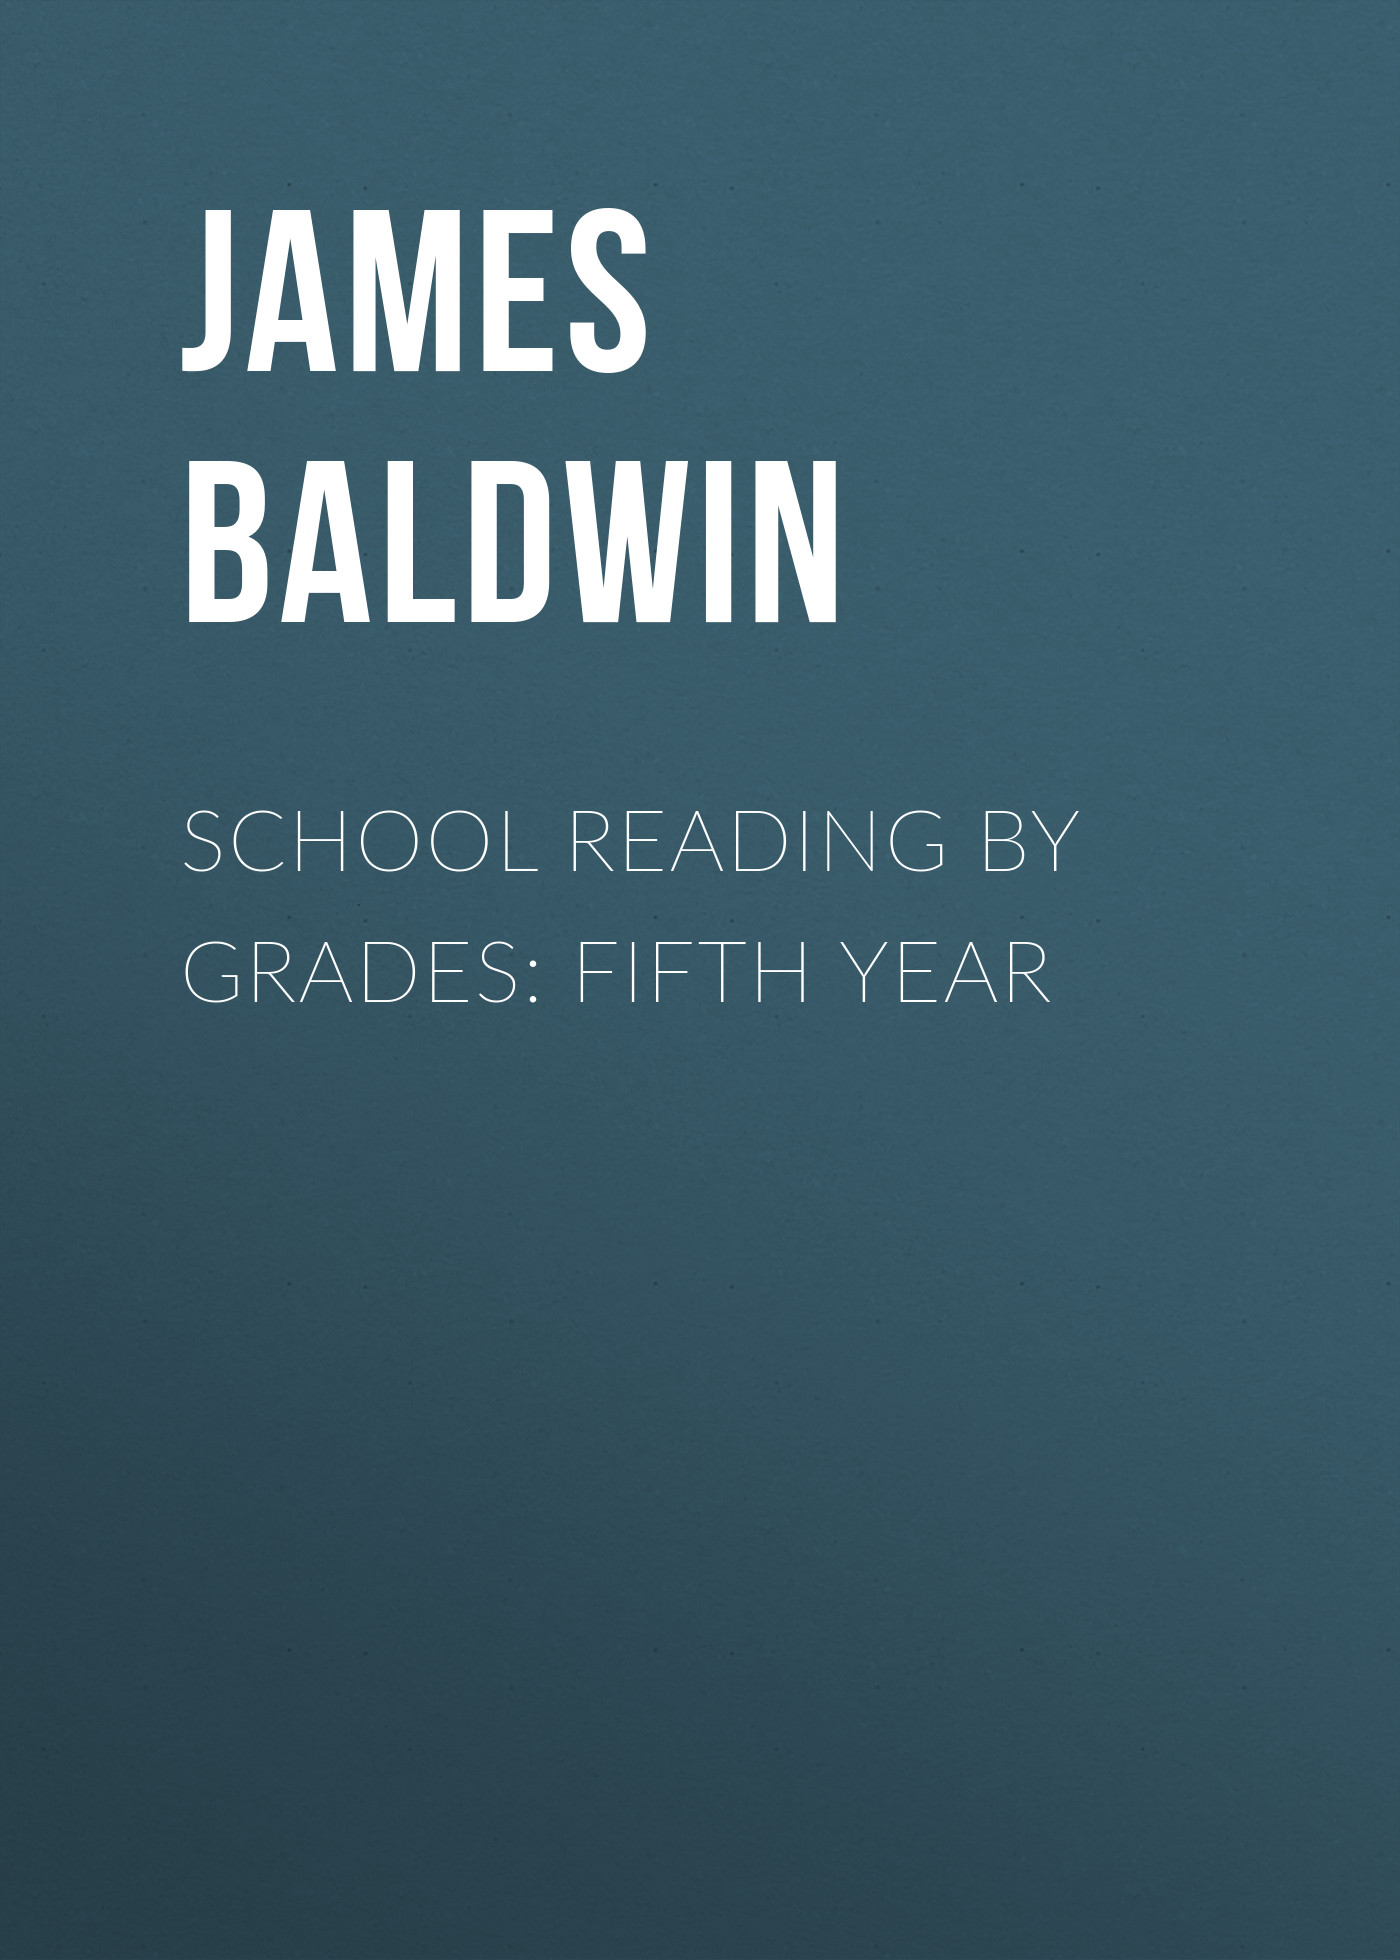 Baldwin James School Reading By Grades: Fifth Year alec baldwin